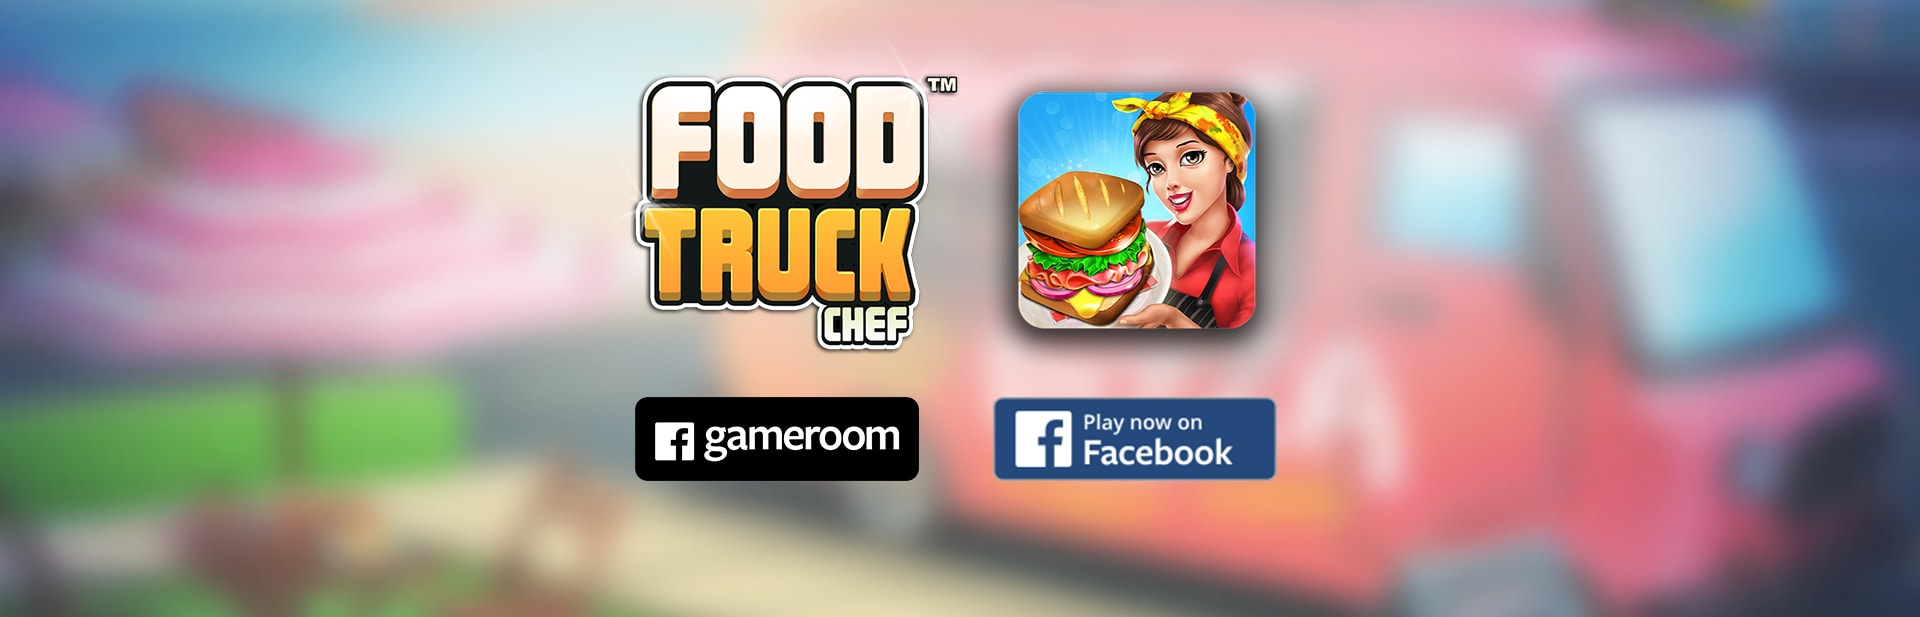 food-truck-chef-nukebox-studios-facebook-gameroom